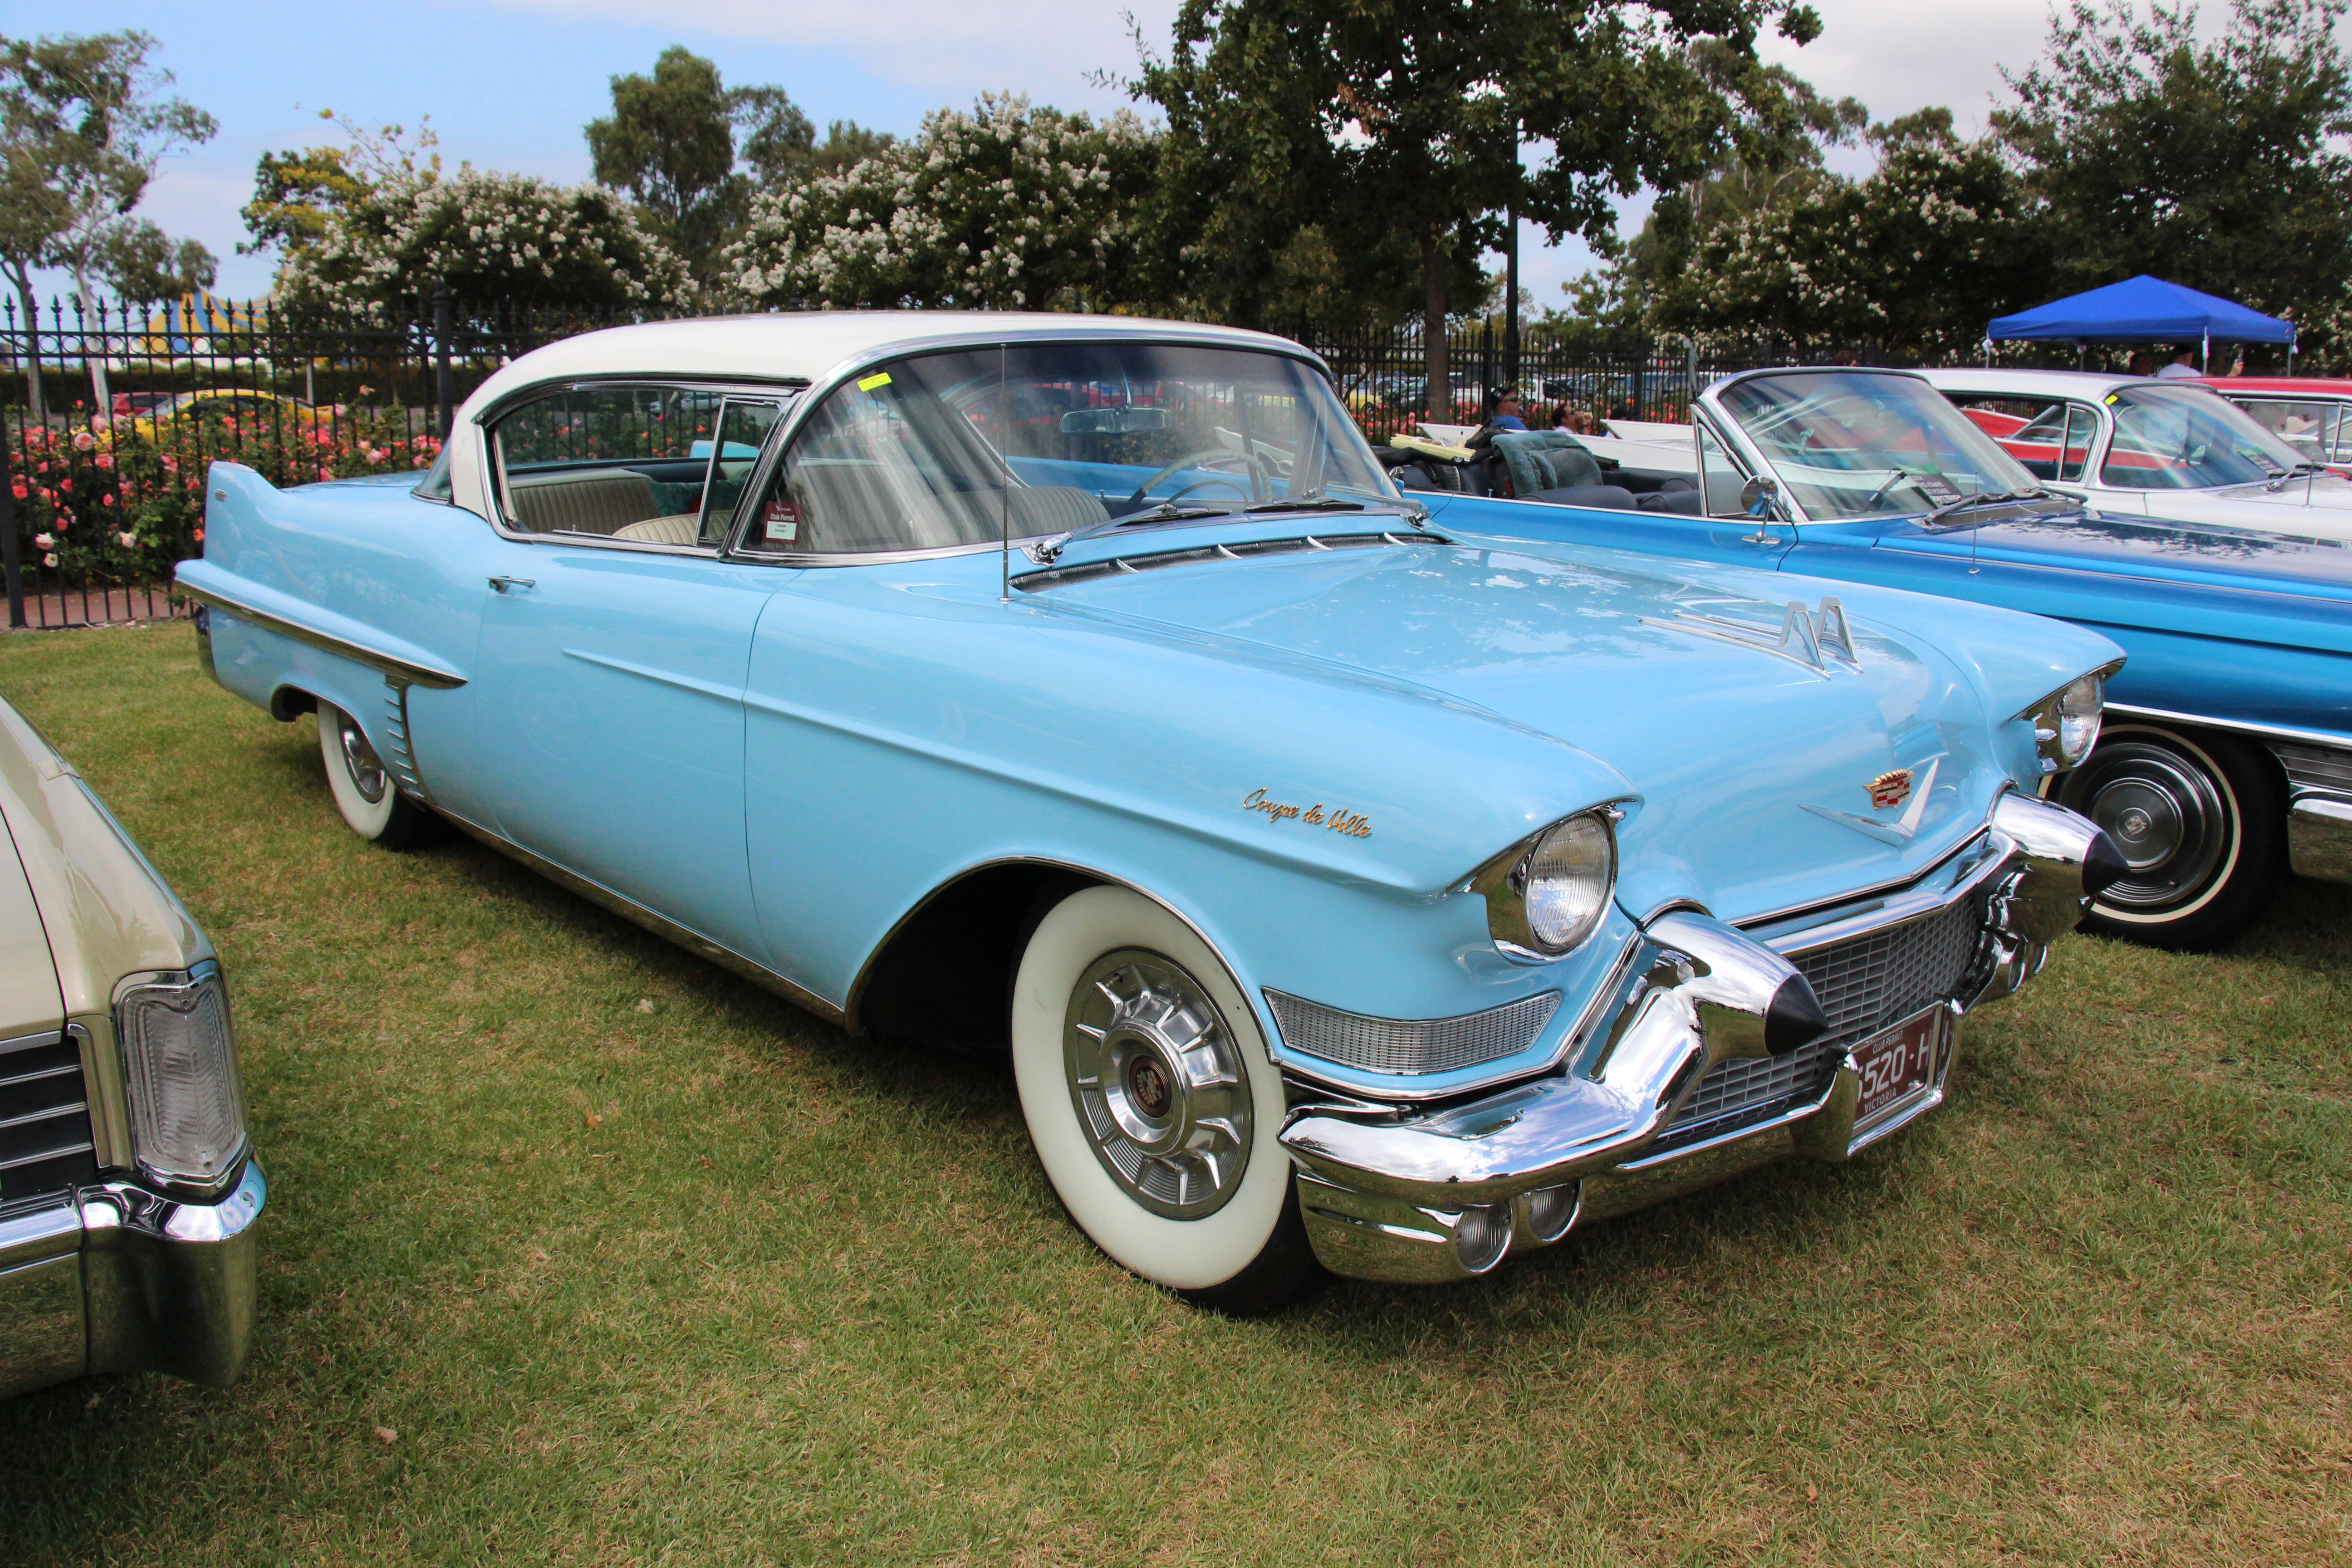 File:1957 Cadillac Series 62 Coupe deVille (32987013200).jpg ...